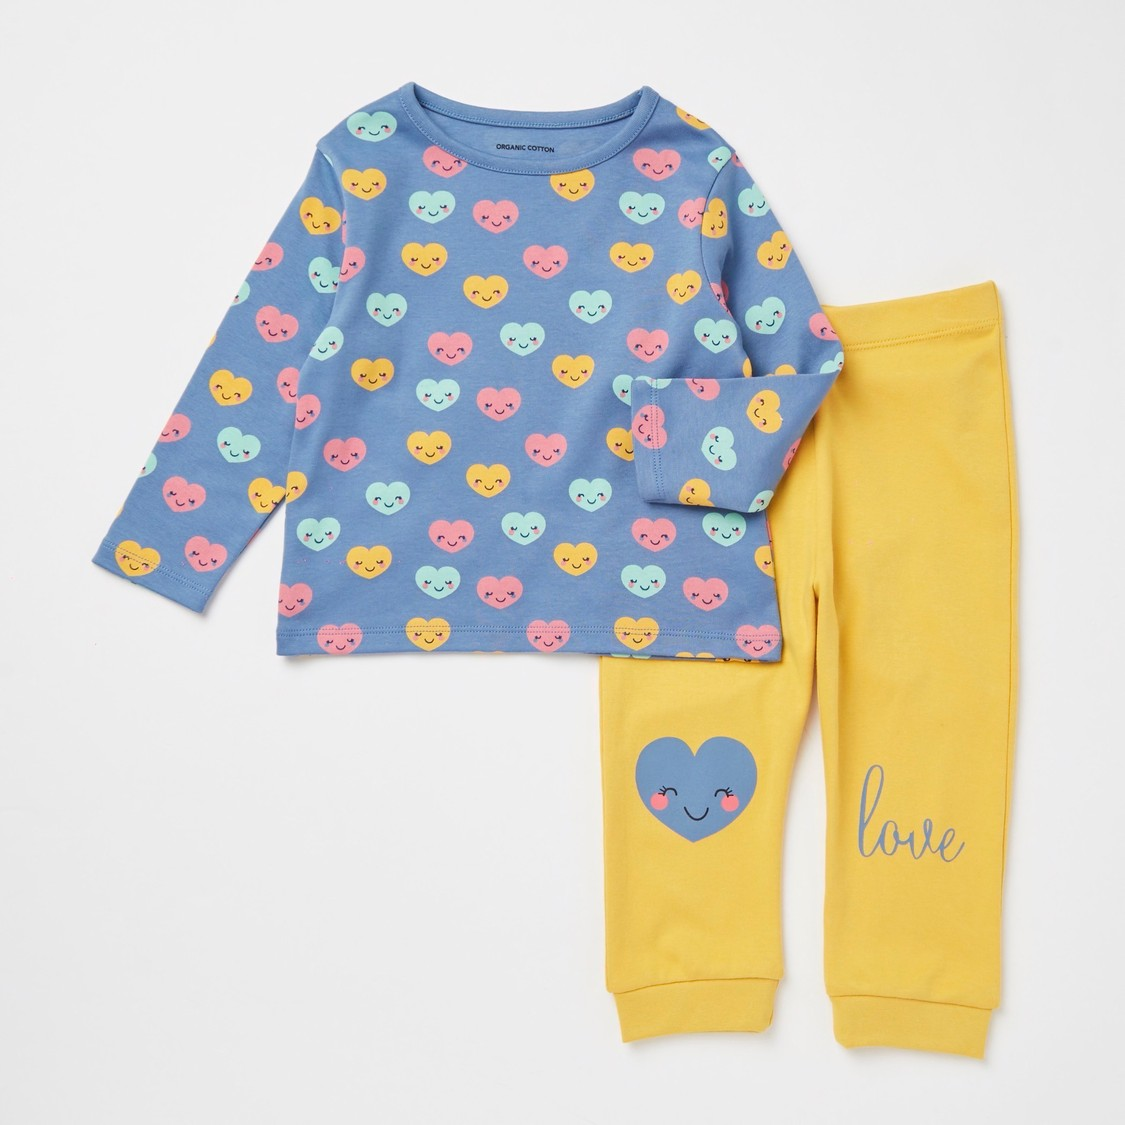 All-Over Heart Face Print Long Sleeves T-shirt and Pyjama Set